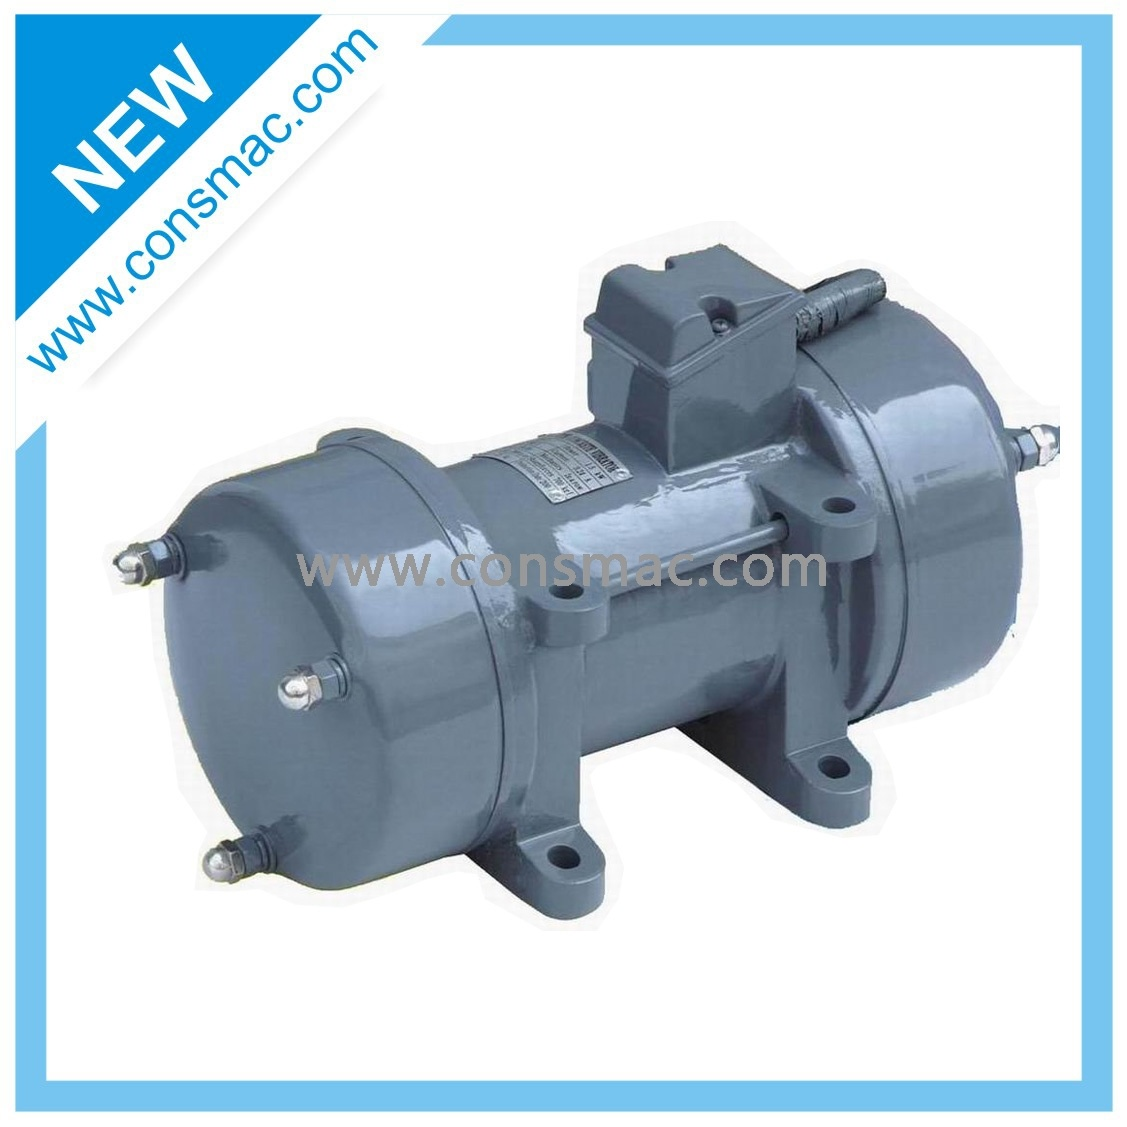 China Vibration Motor Sev 50 China Vibration Motor